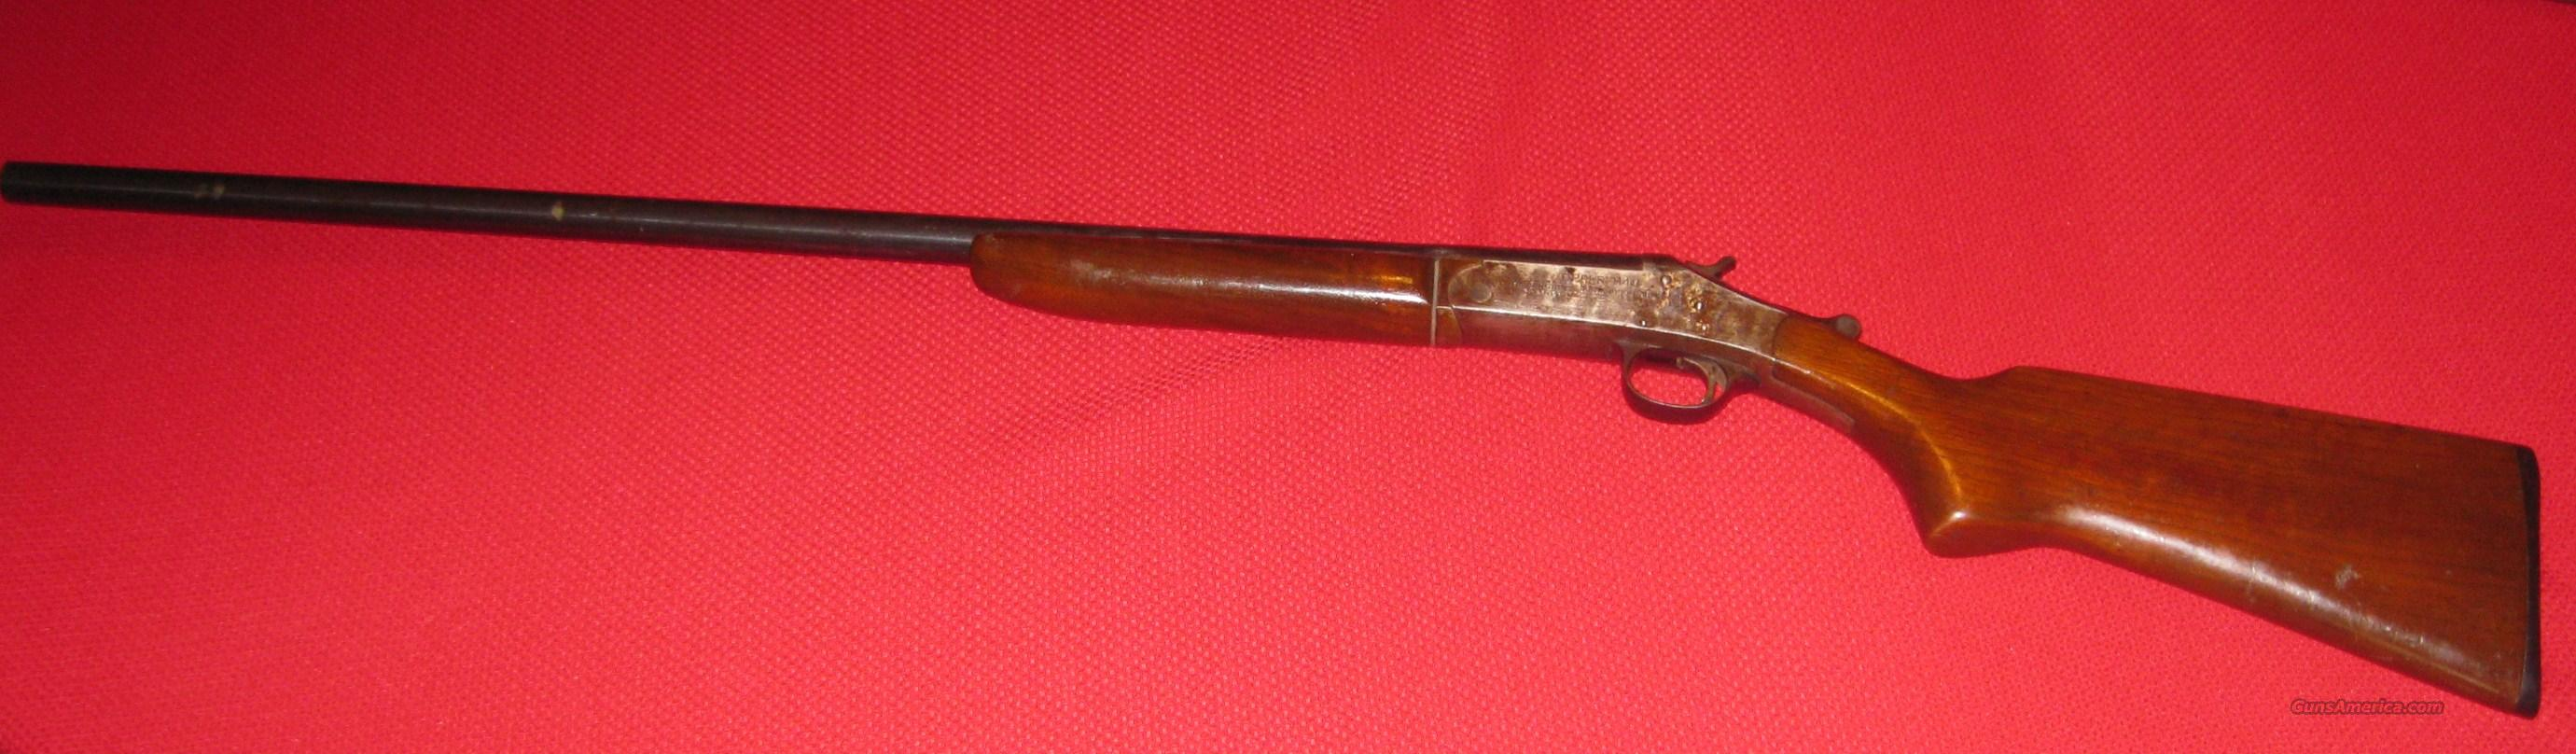 H&R model 48 16 gauge  Guns > Shotguns > Harrington & Richardson Shotguns